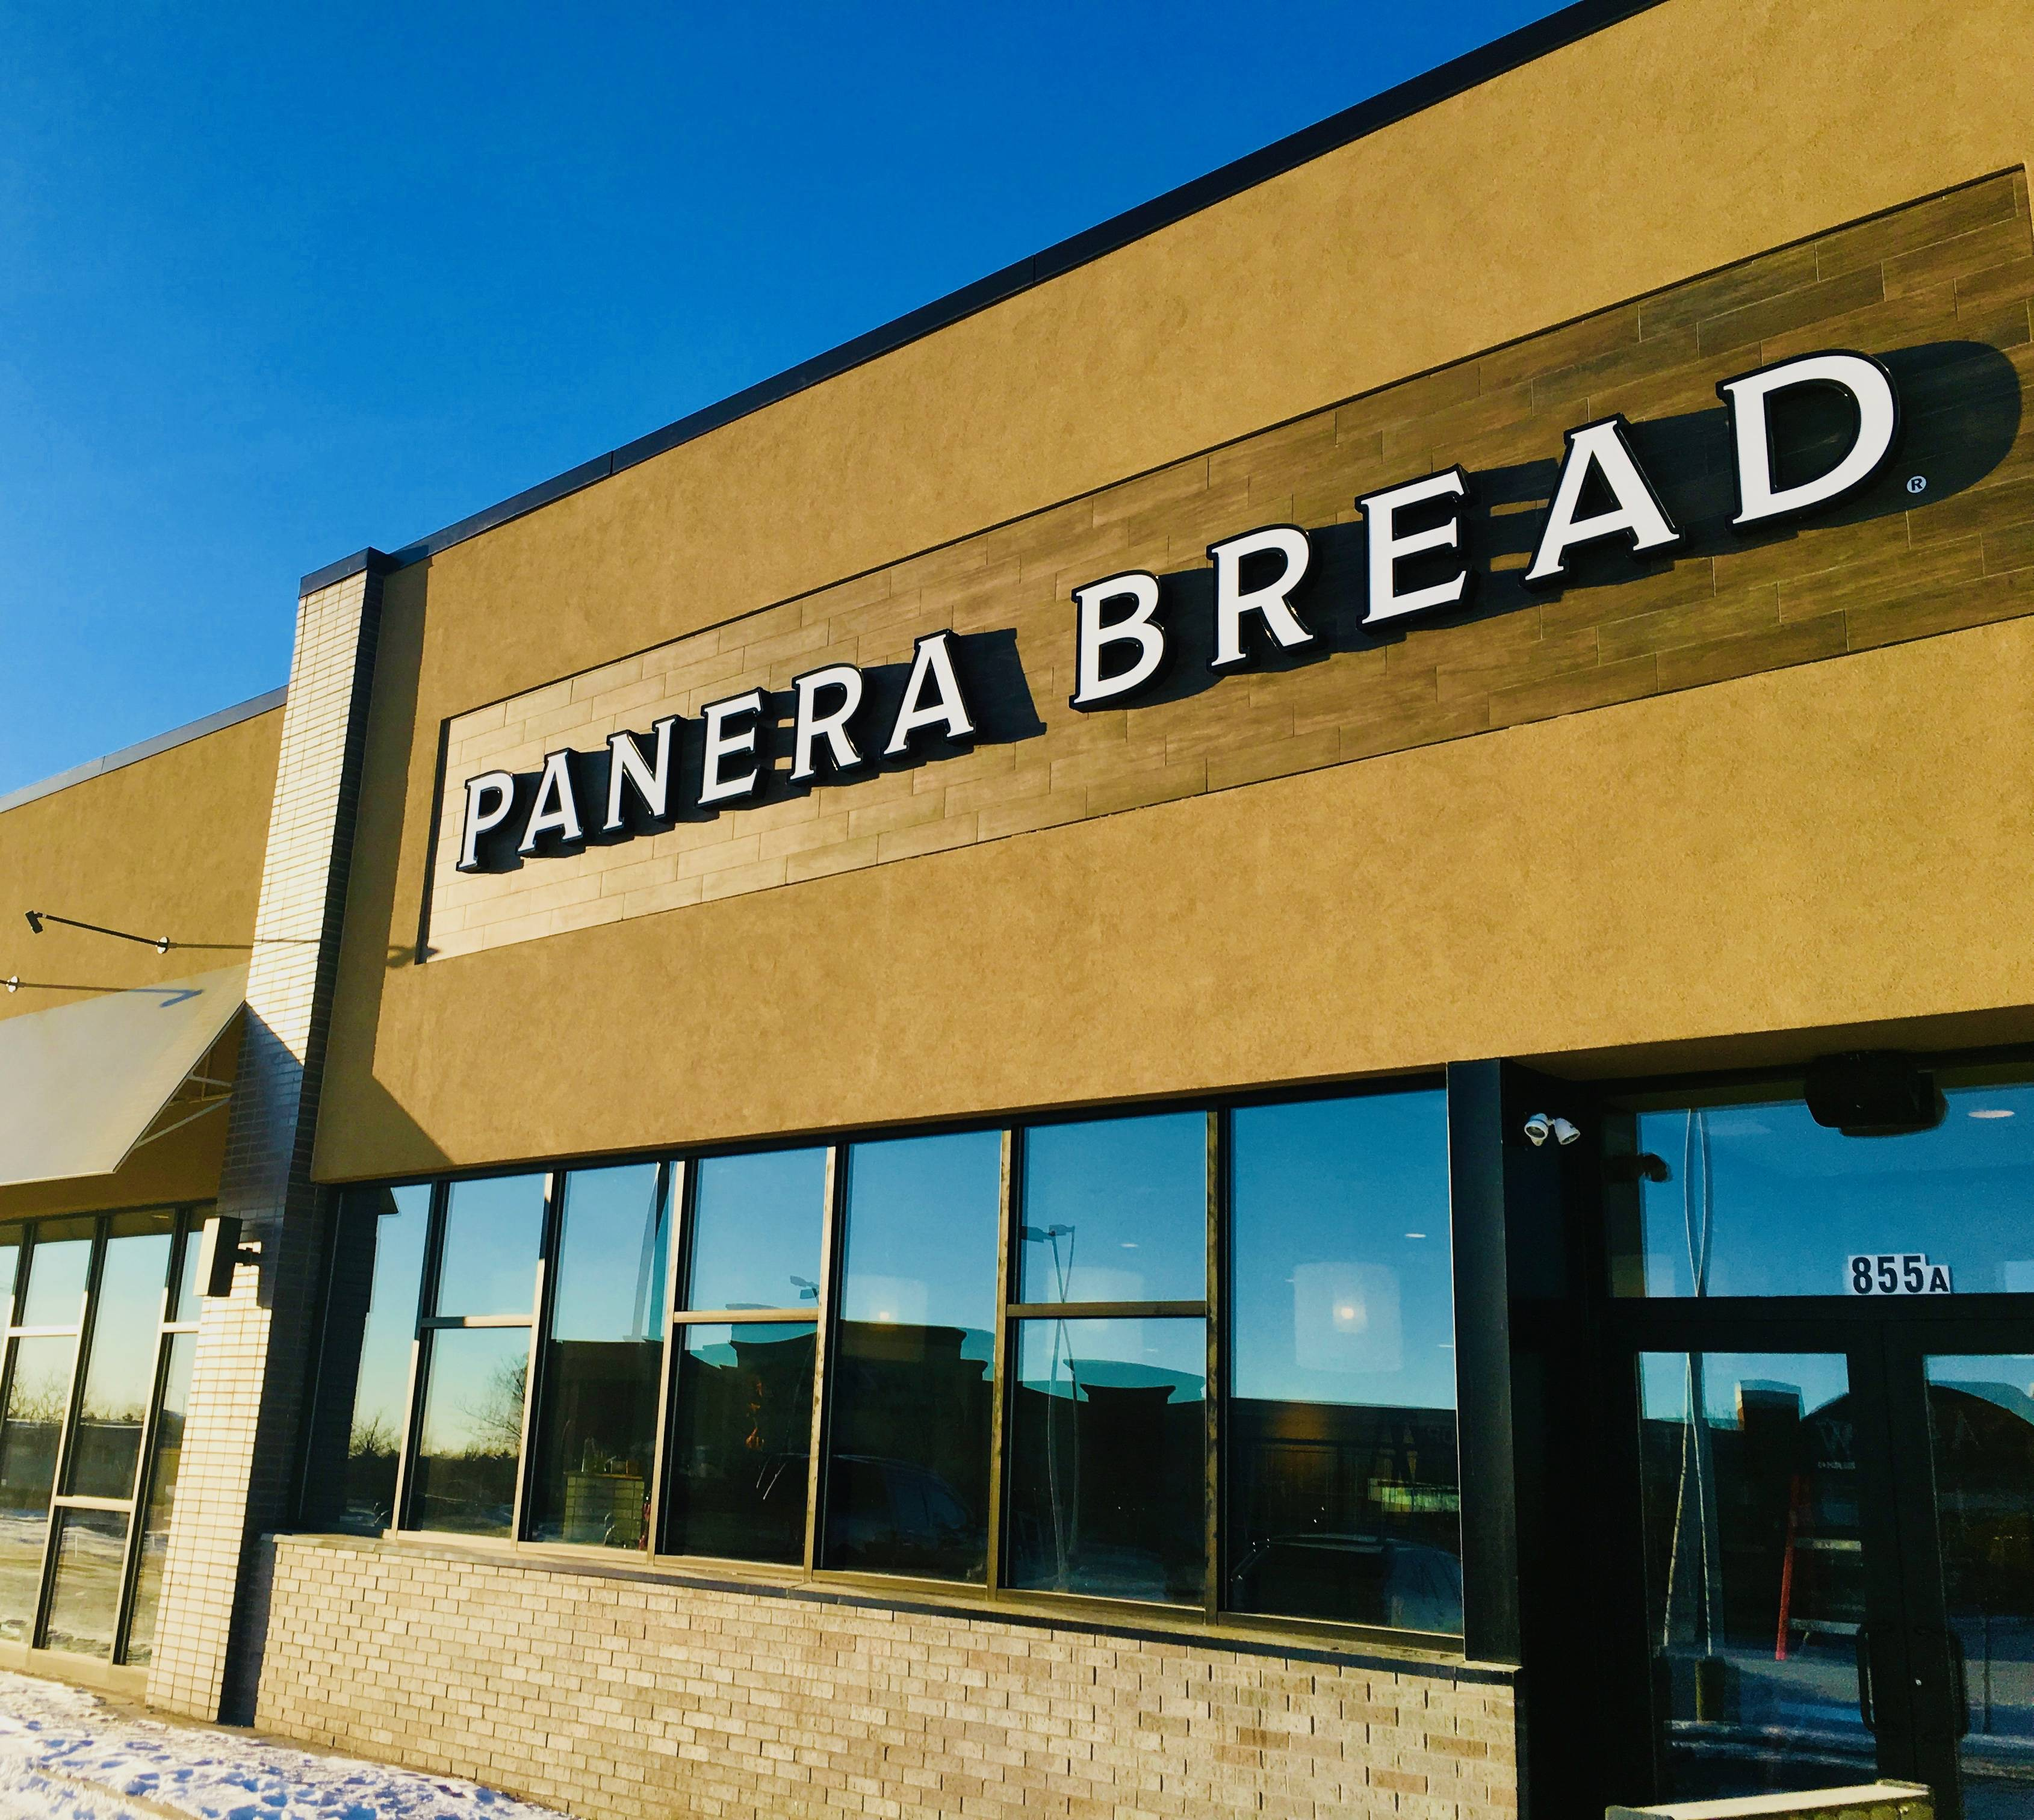 On Friday, Jan. 12, Panera Bread will relocate to 855 E. Boughton Road in Bolingbrook. On opening day, the first 100 dine-in guests with any purchase will receive a free You Pick Two for a Year certificate.